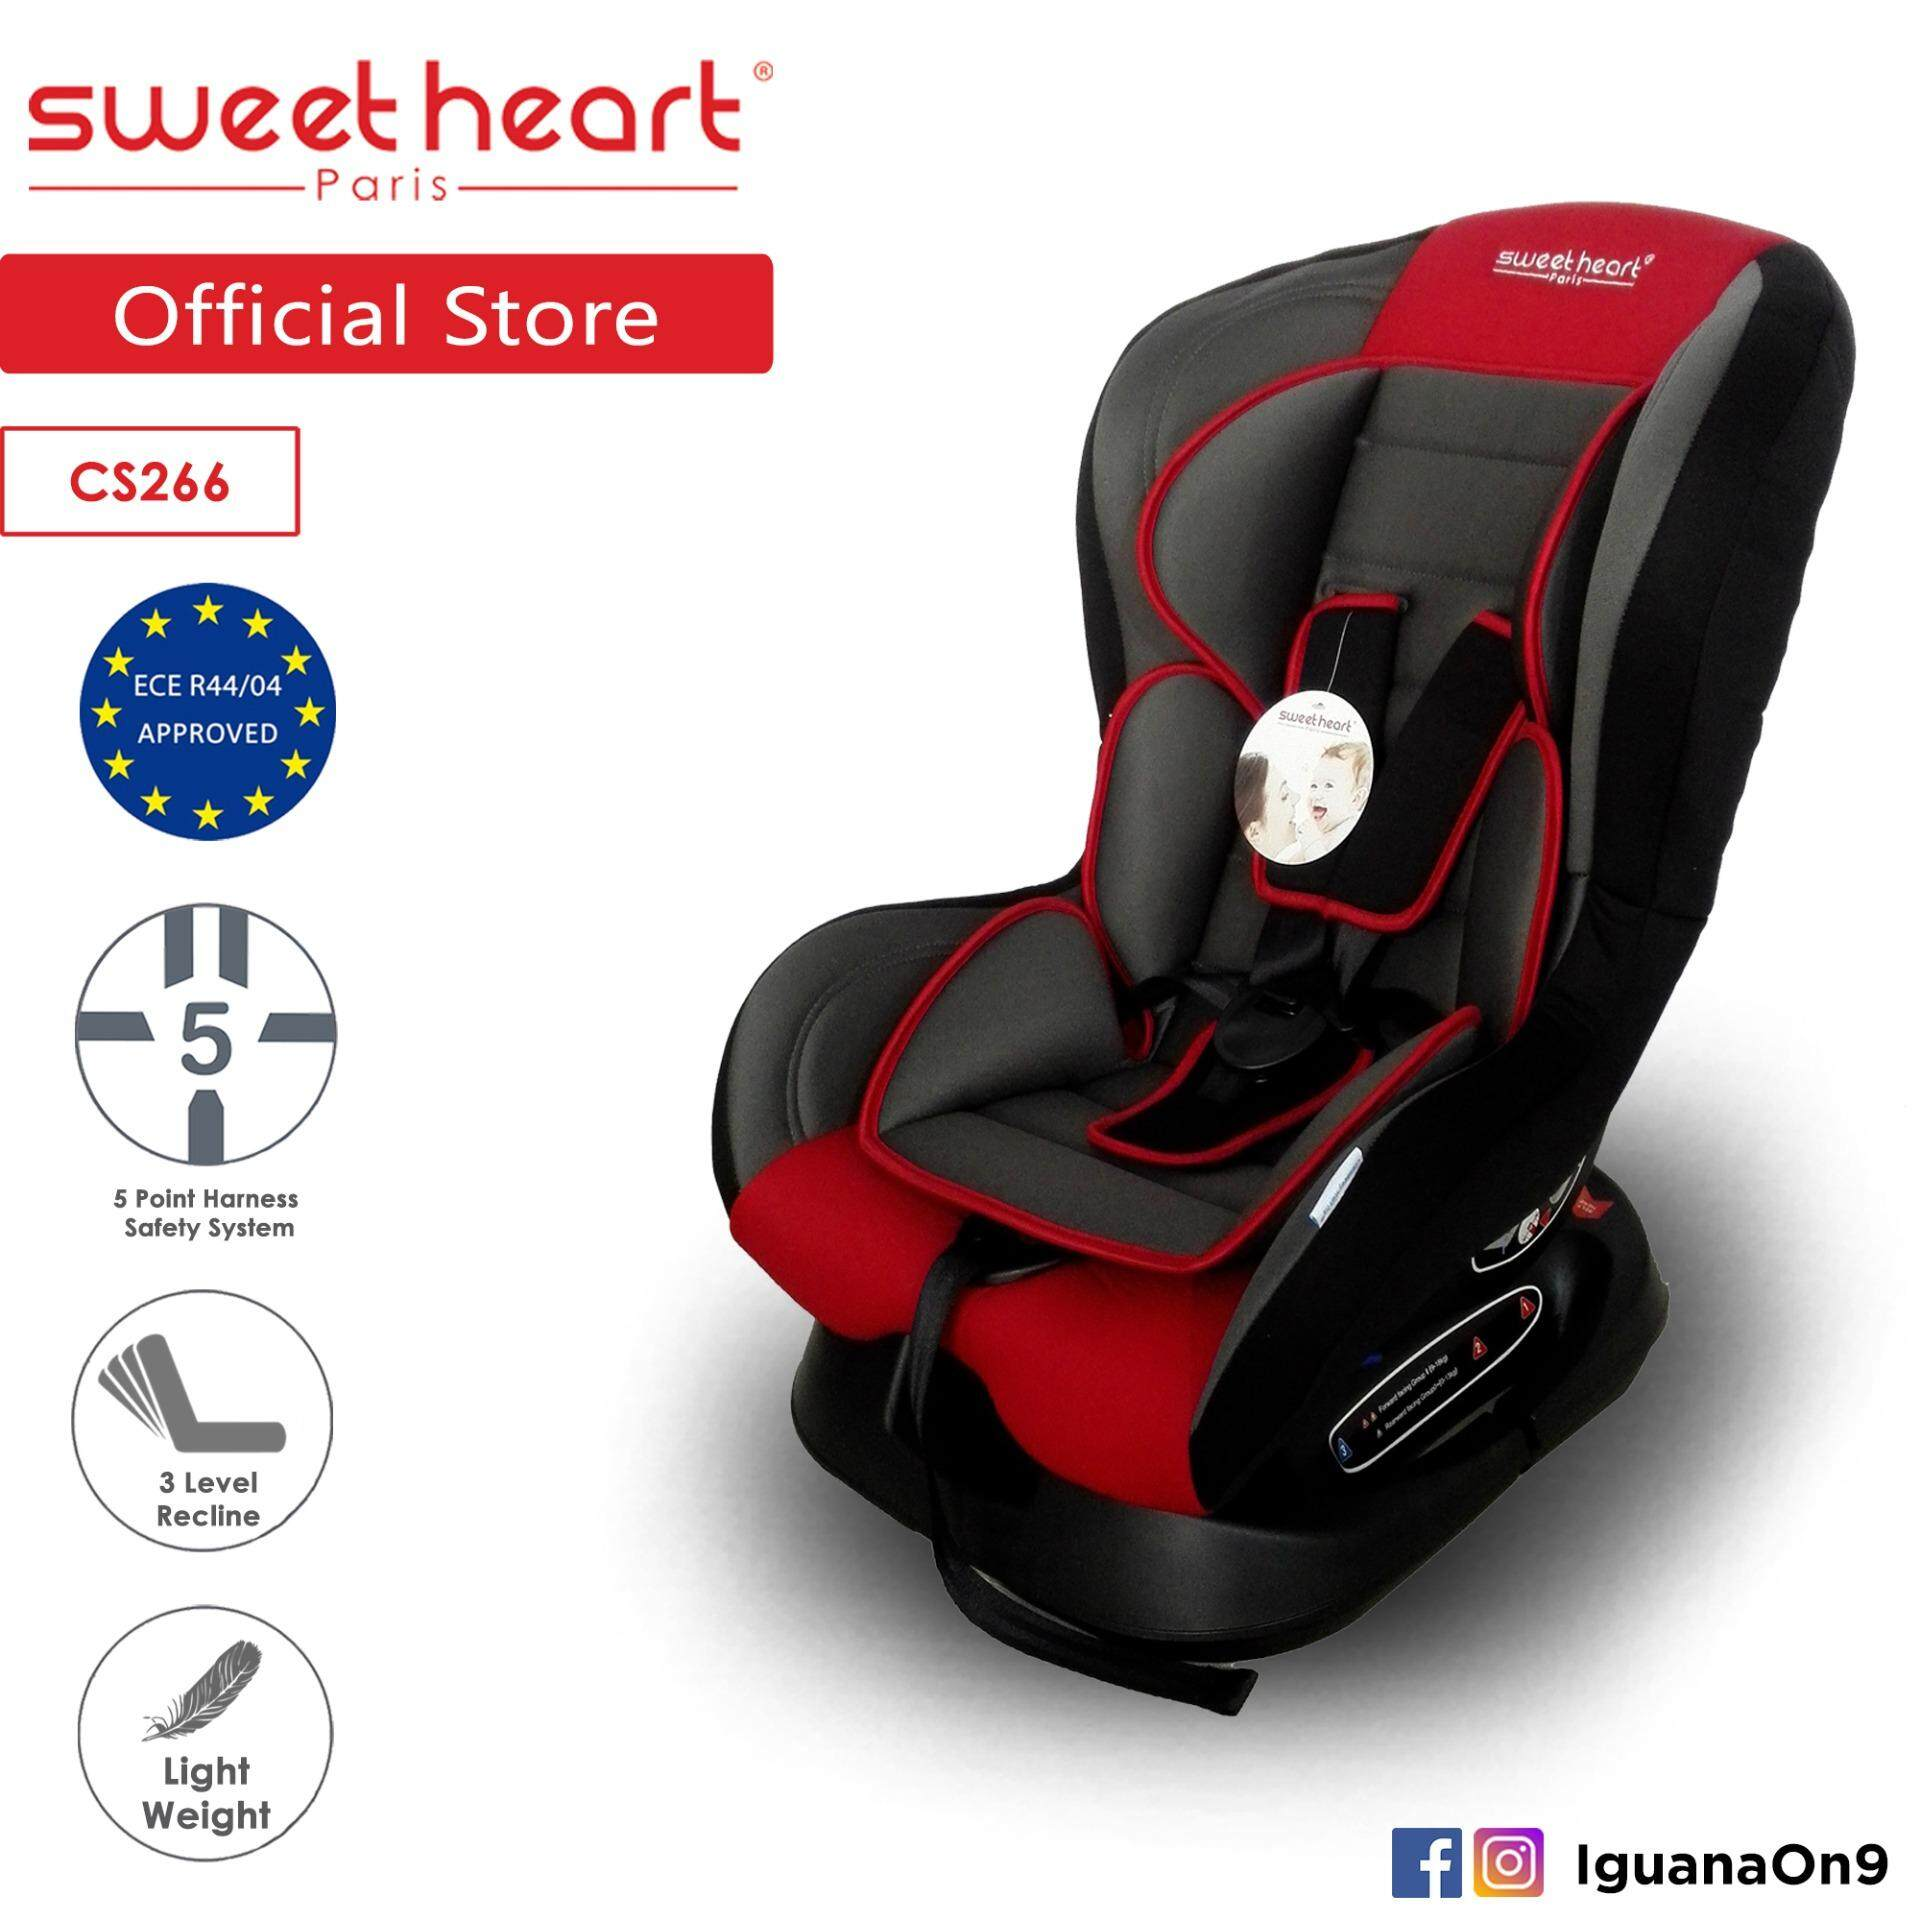 Sweet Heart Paris CS266 Safety Car Seat (Red) with Comfort Padded